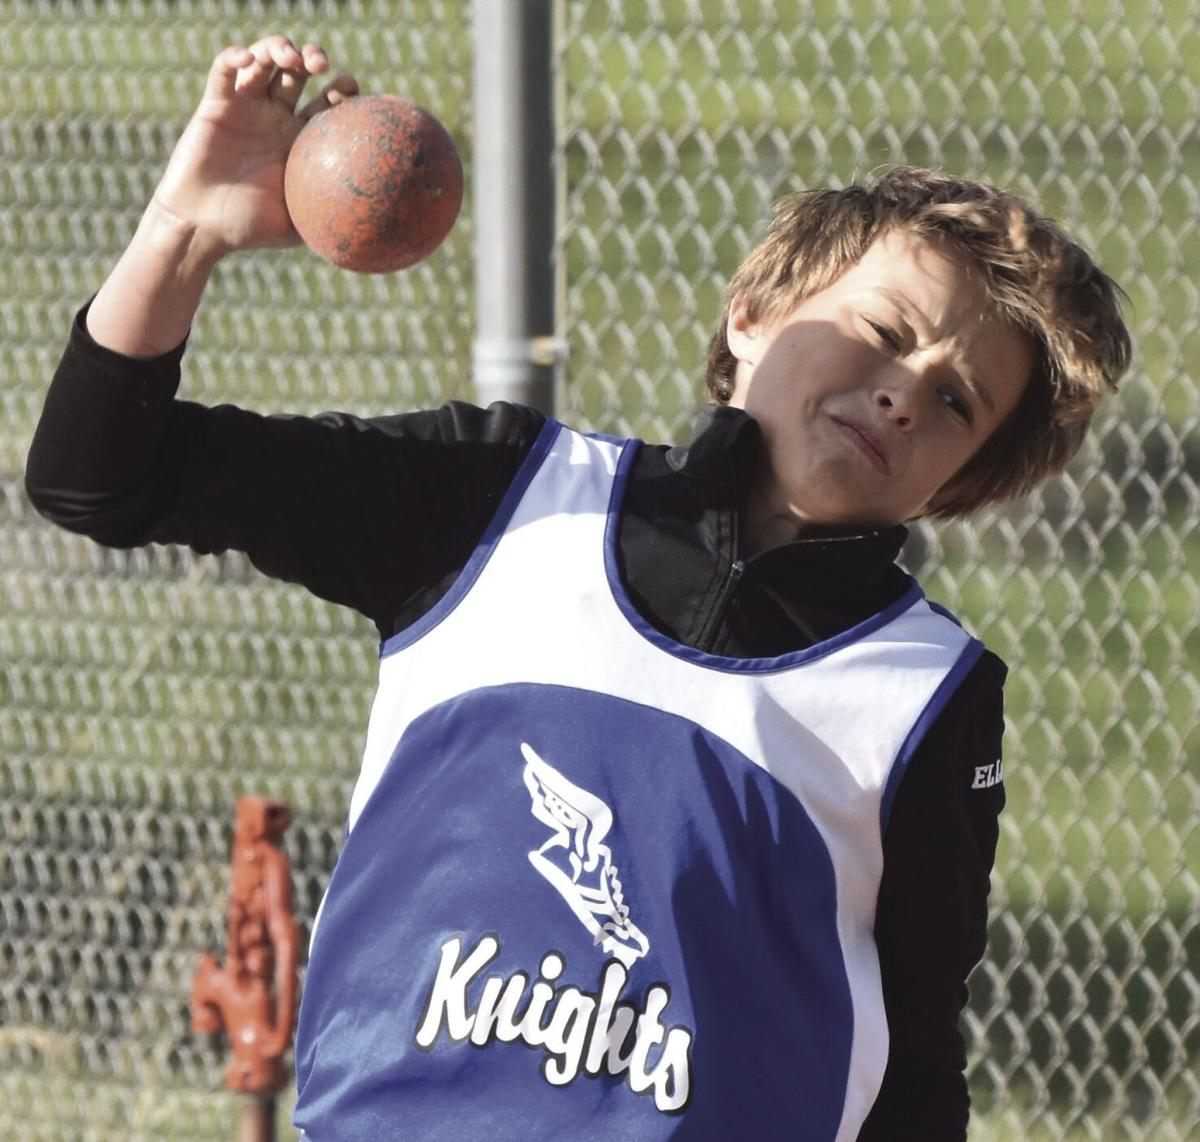 KNIGHTS TRACK AND FIELD